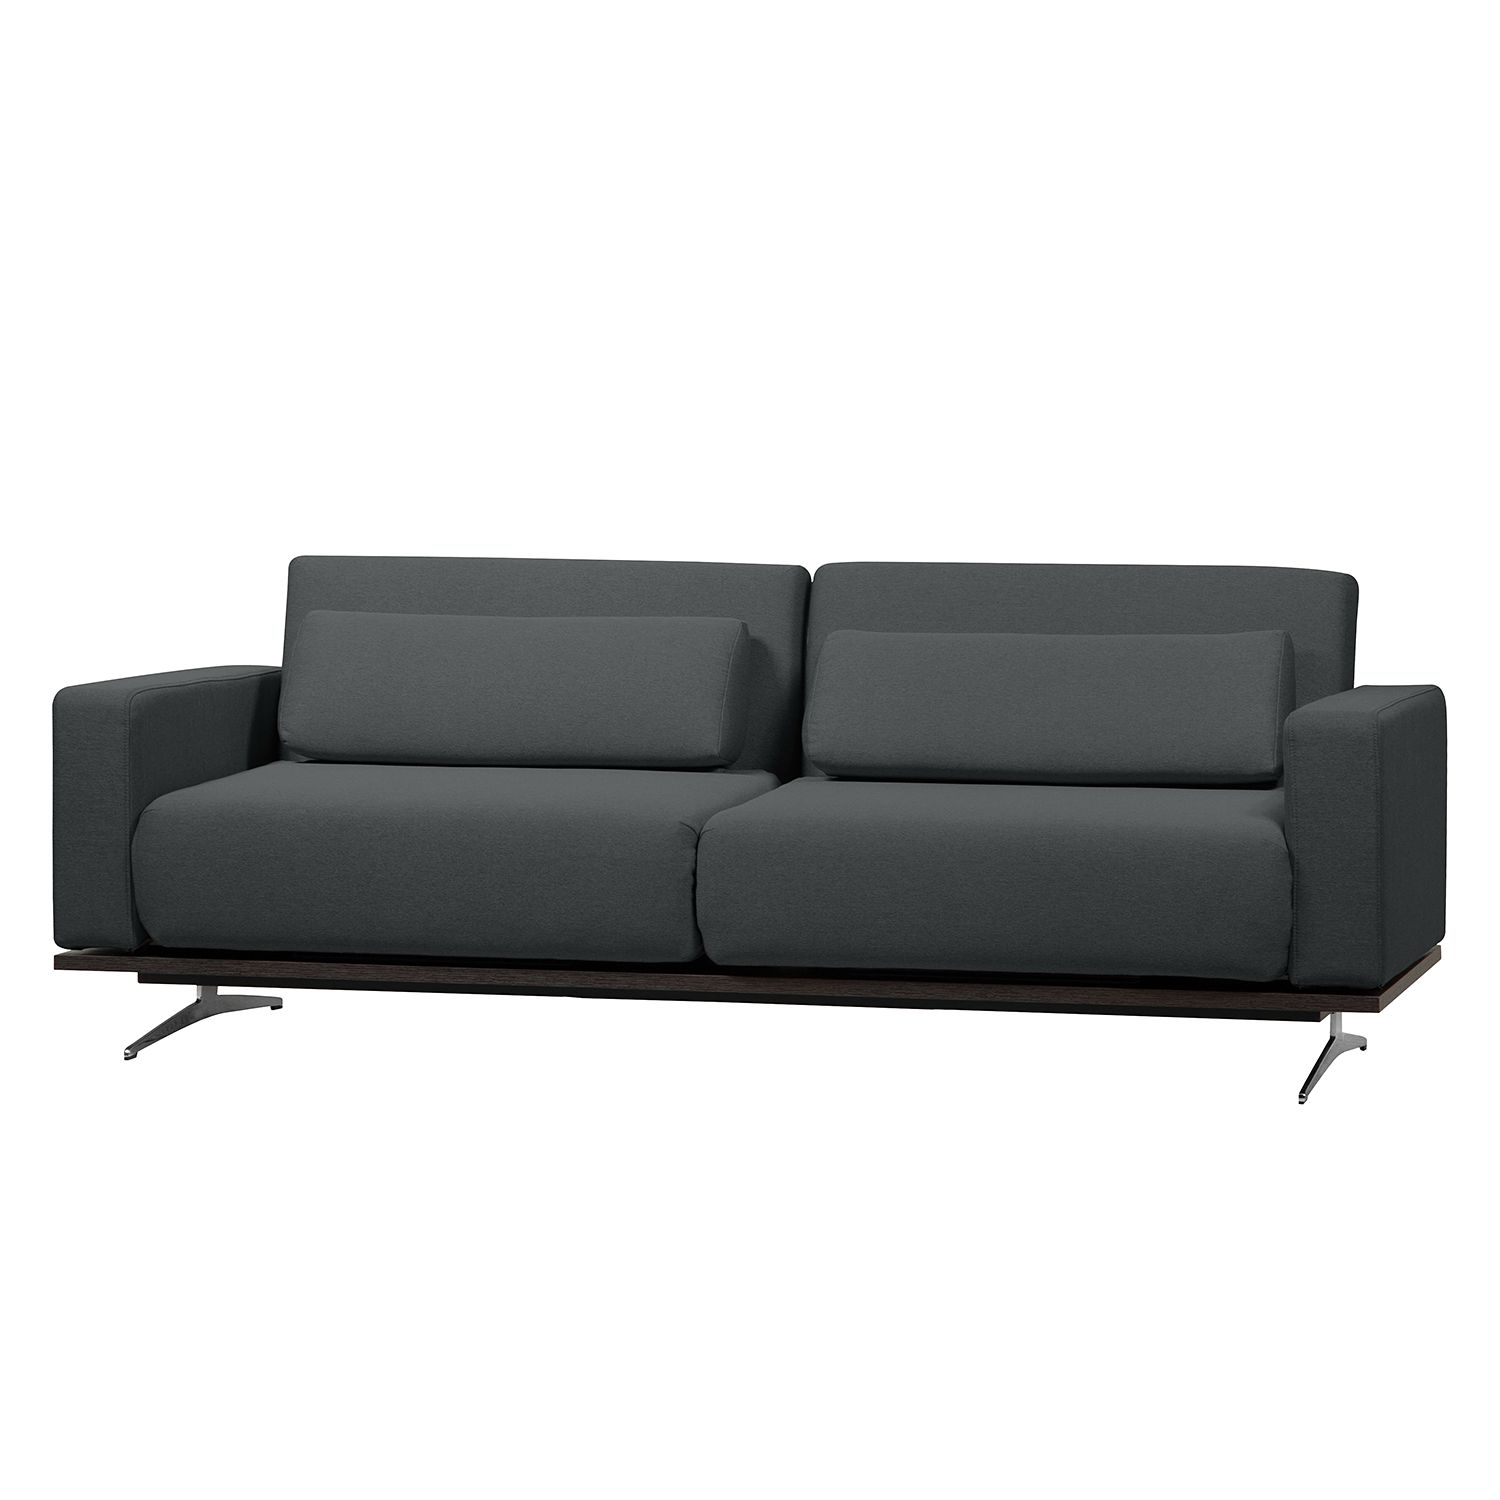 schlafsofa copperfield ii webstoff anthrazit studio copenhagen g nstig kaufen. Black Bedroom Furniture Sets. Home Design Ideas